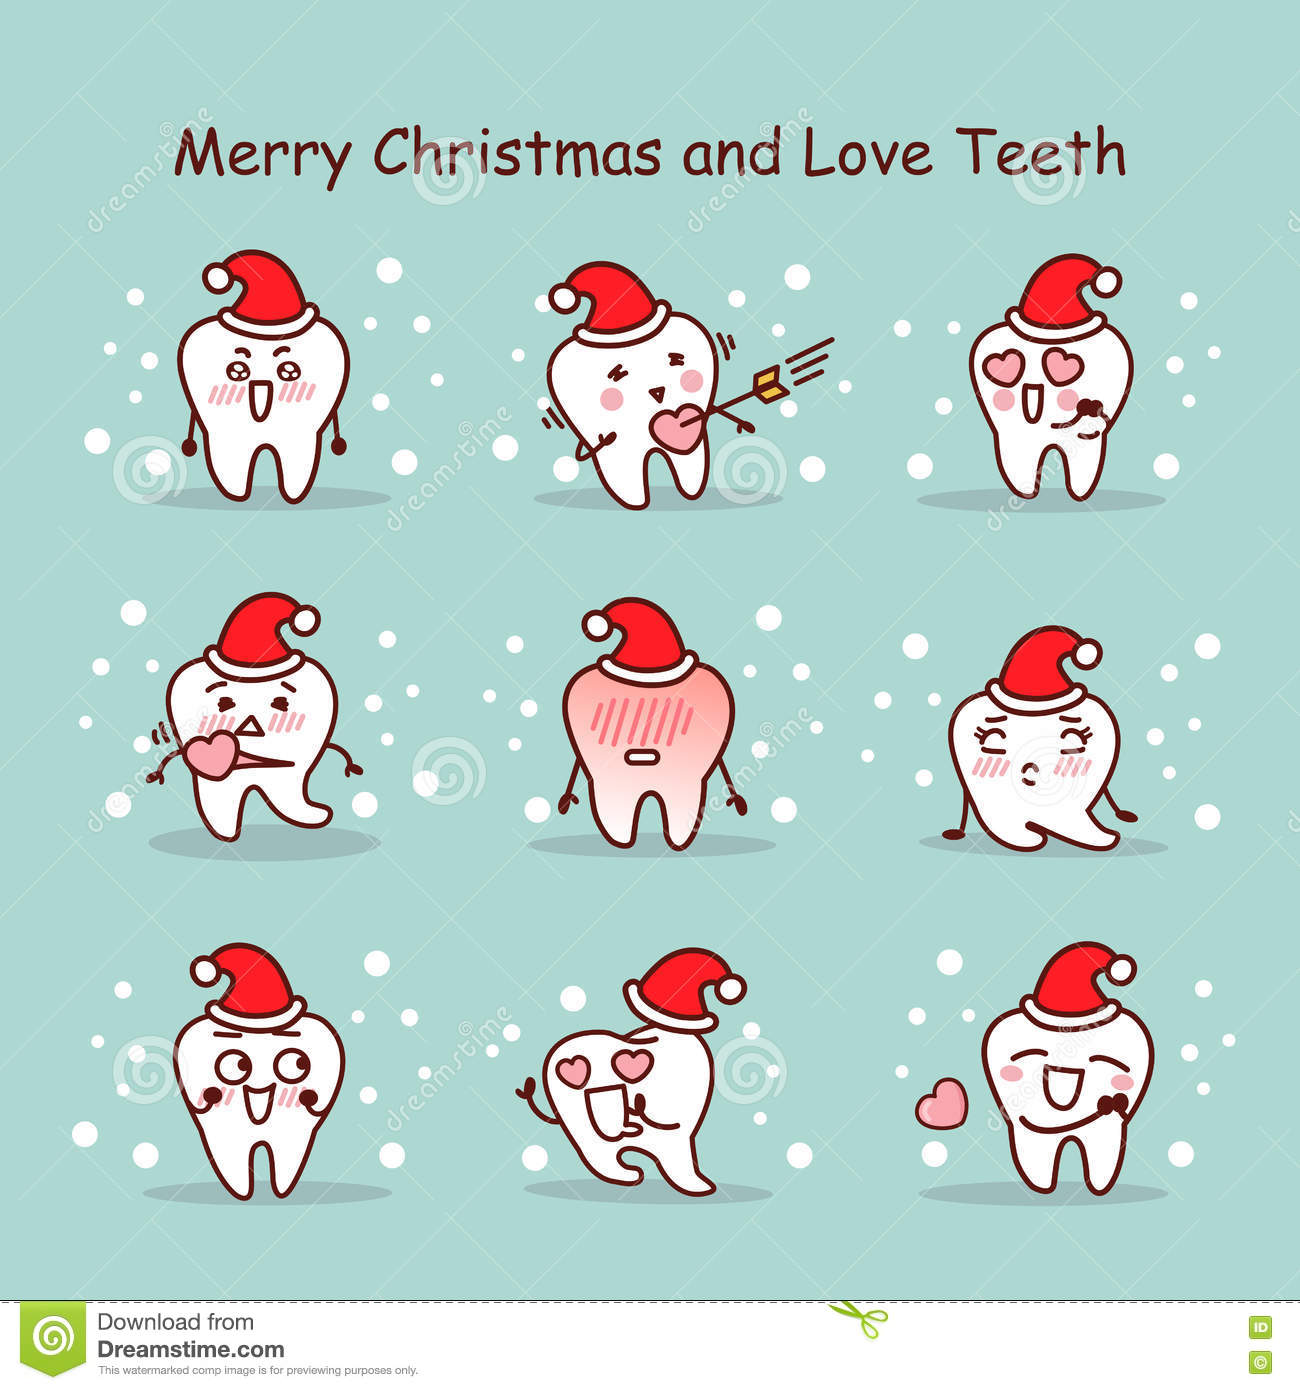 Merry Christmas And Love Teeth Stock Vector - Illustration of ...